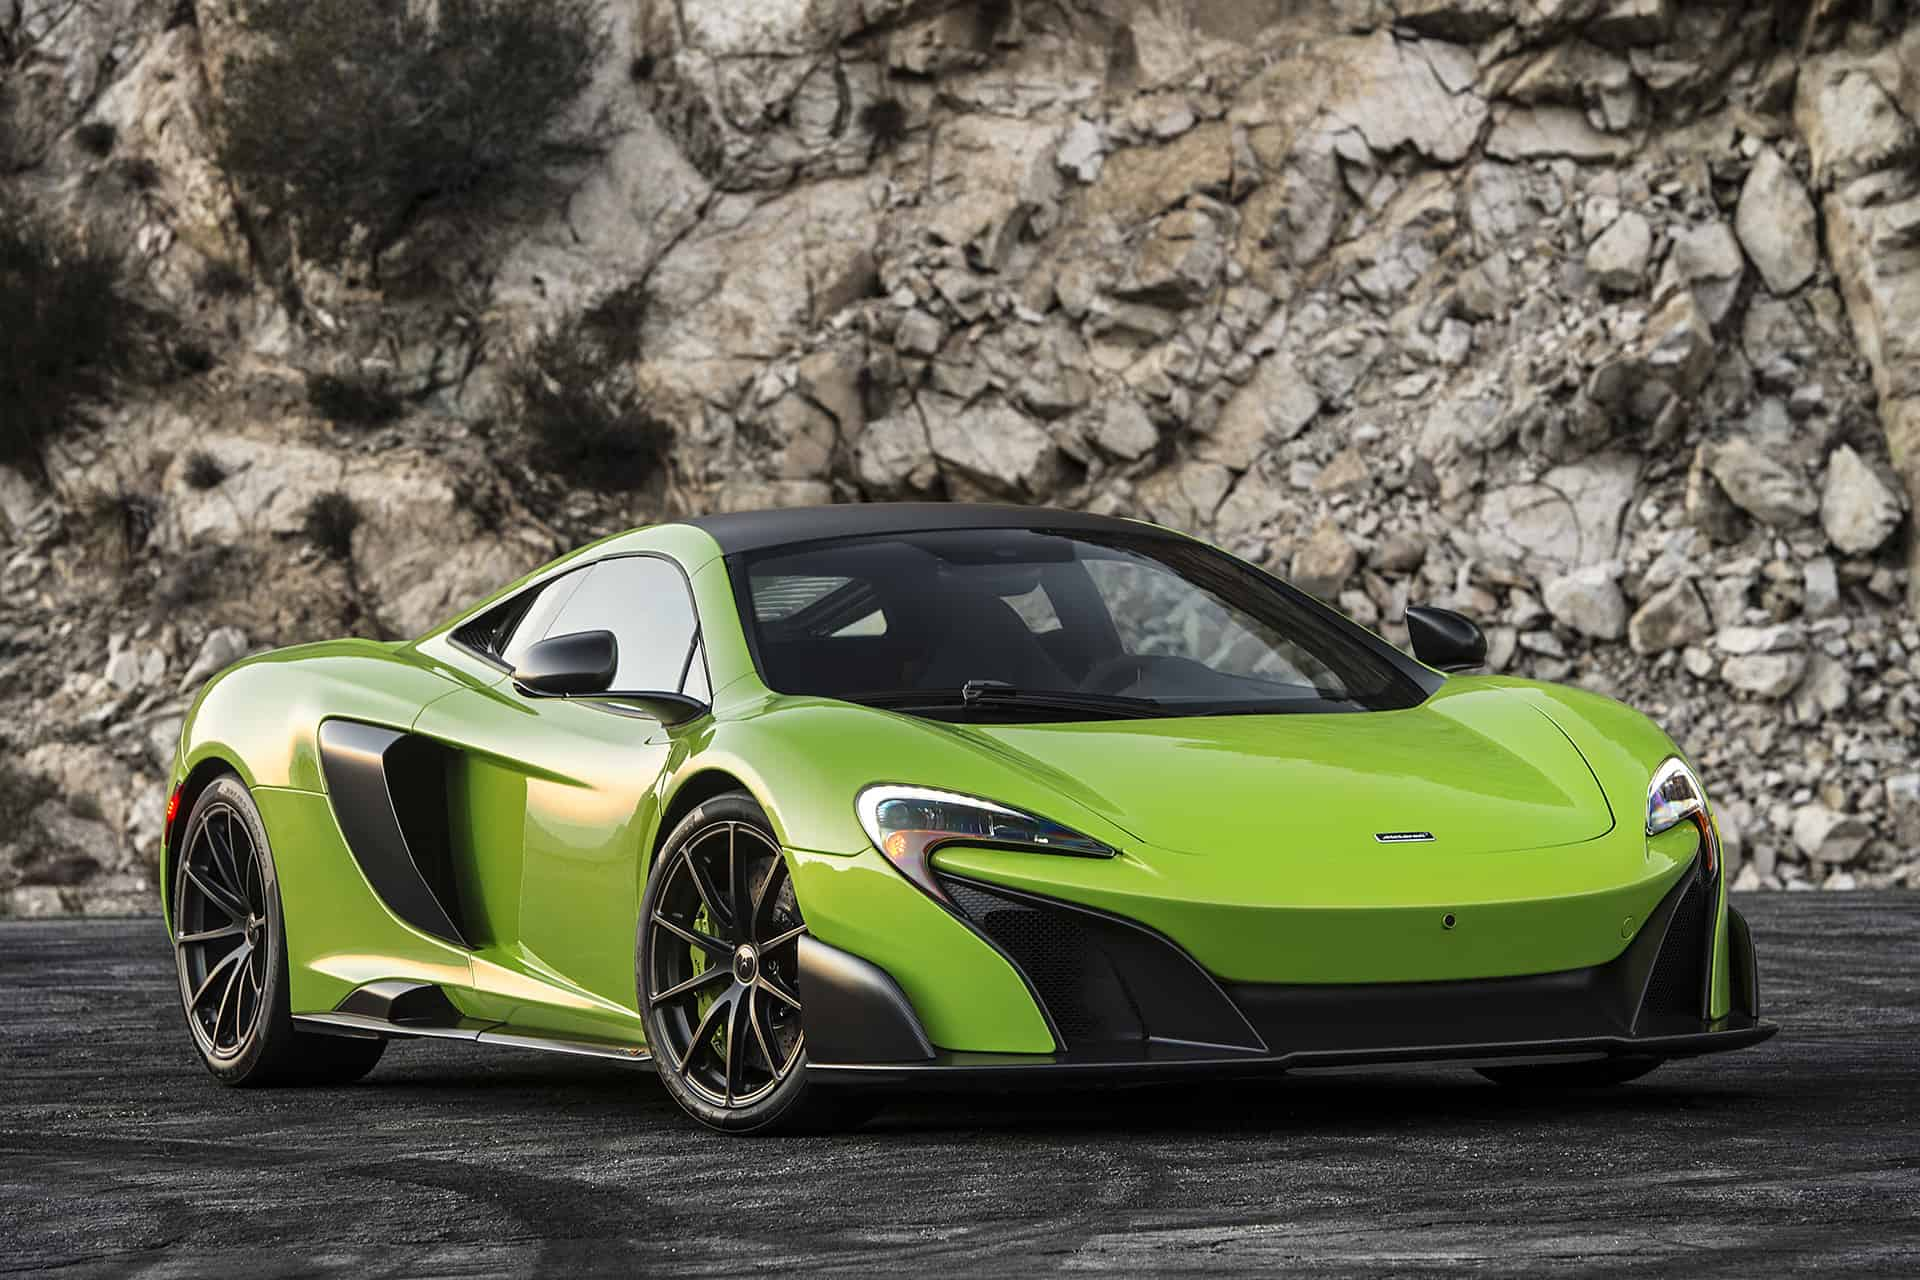 03-2016-mclaren-675lt-review-1.jpg